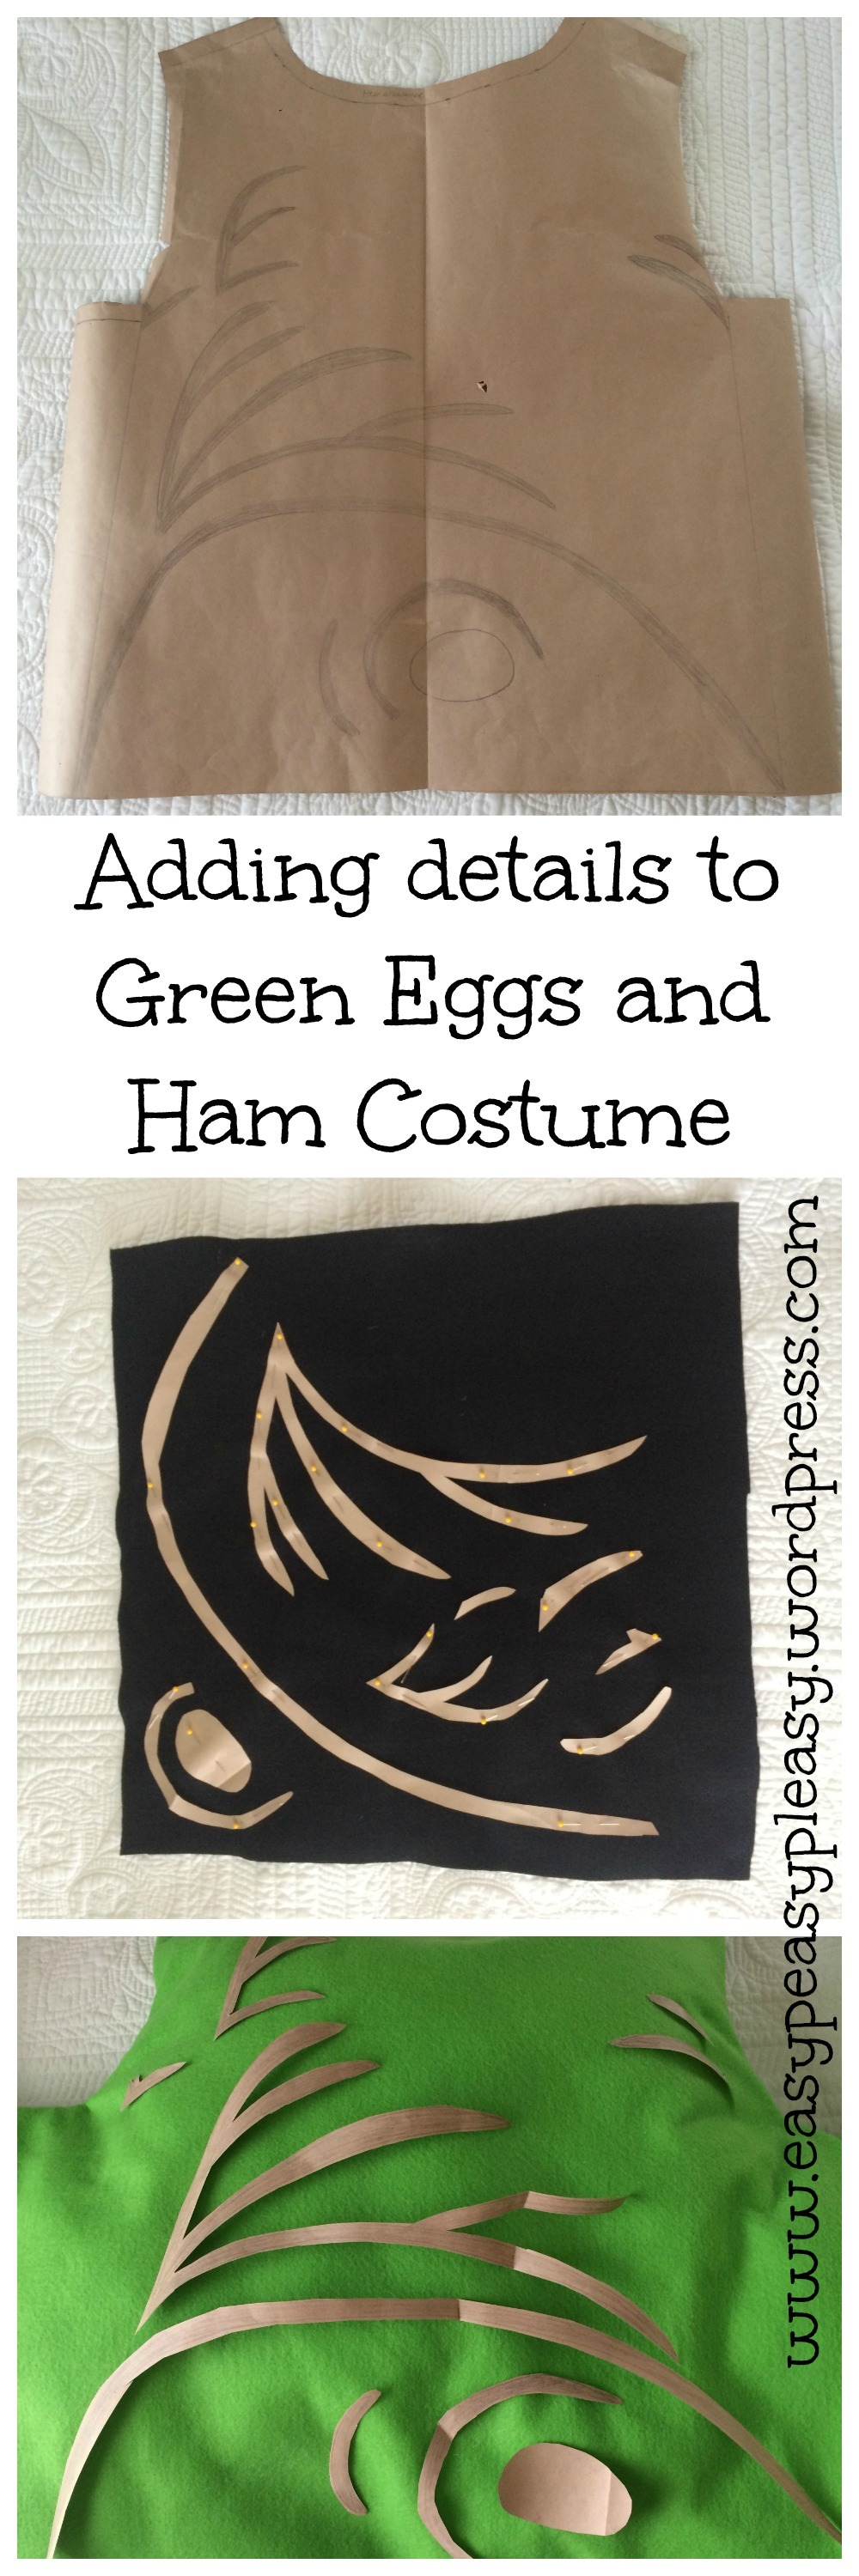 Adding details to Dr. Seuss's Sam I am Green Eggs and Ham Costume. Full directions at www.easypeasypleasy.wordpress.com